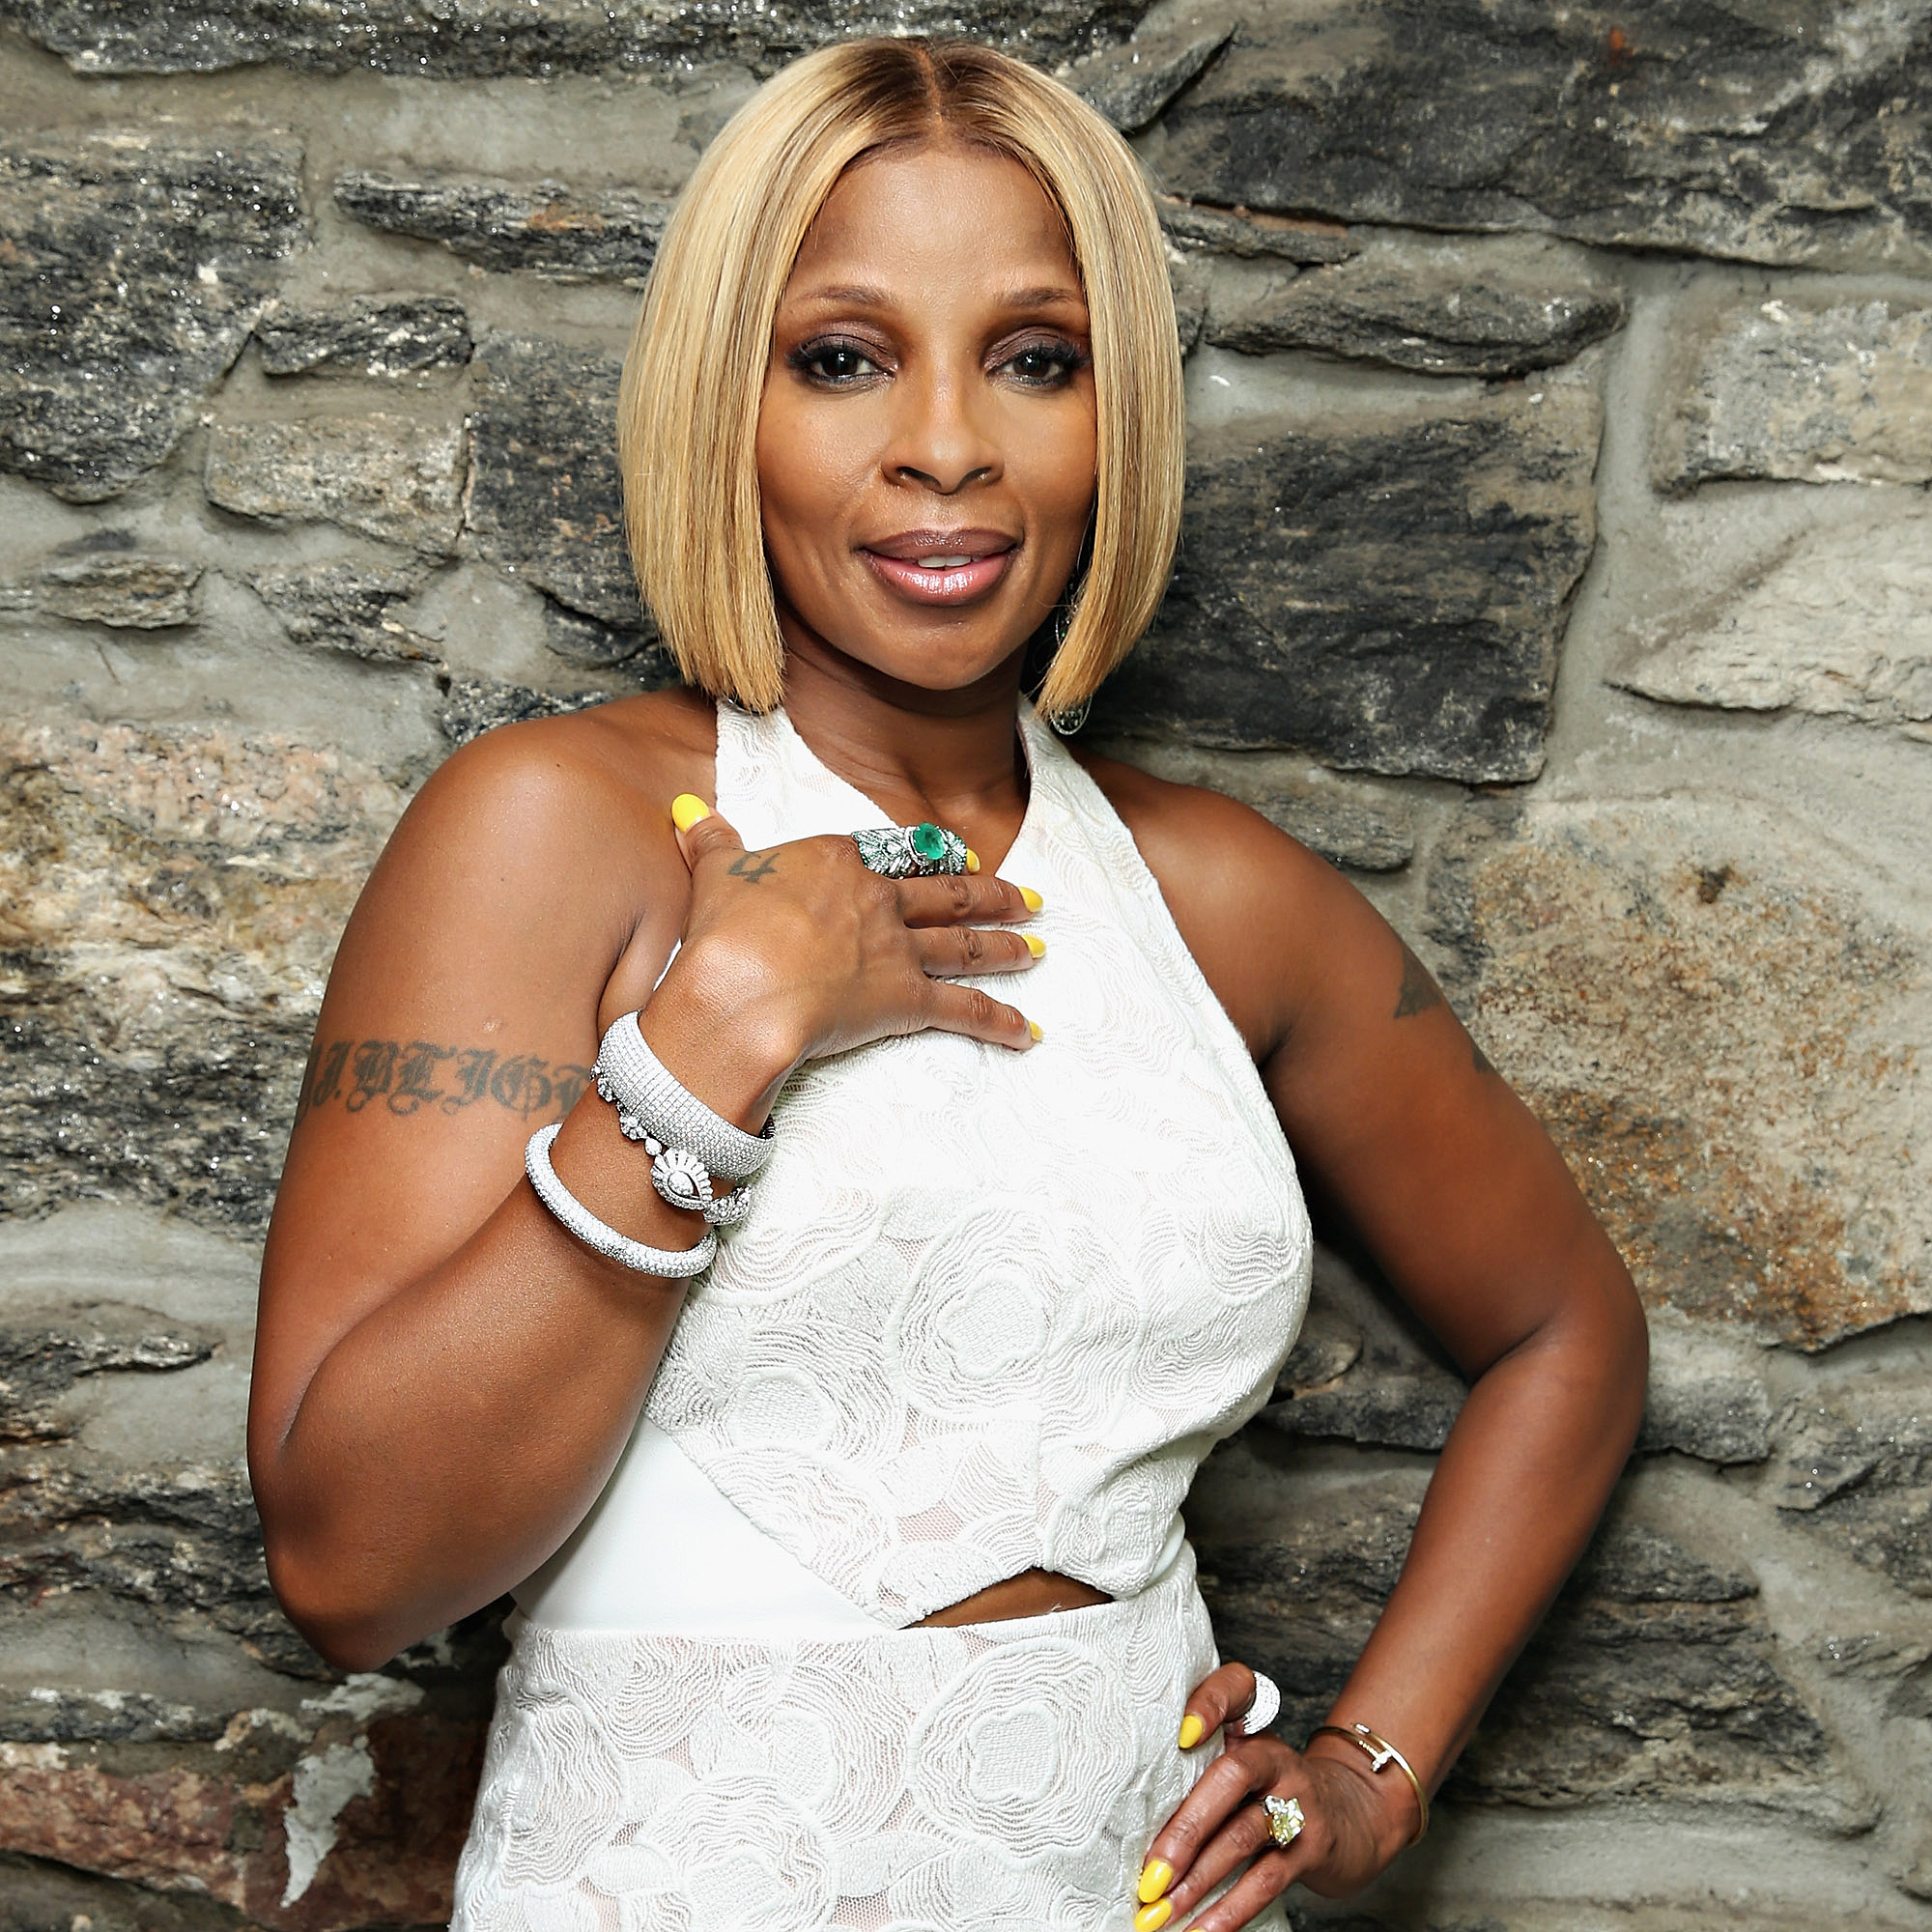 Mary-J. -Blige - The hip-hop singer's childhood involved sexual abuse at the hands of a family friend, and she was a witness to domestic abuse.